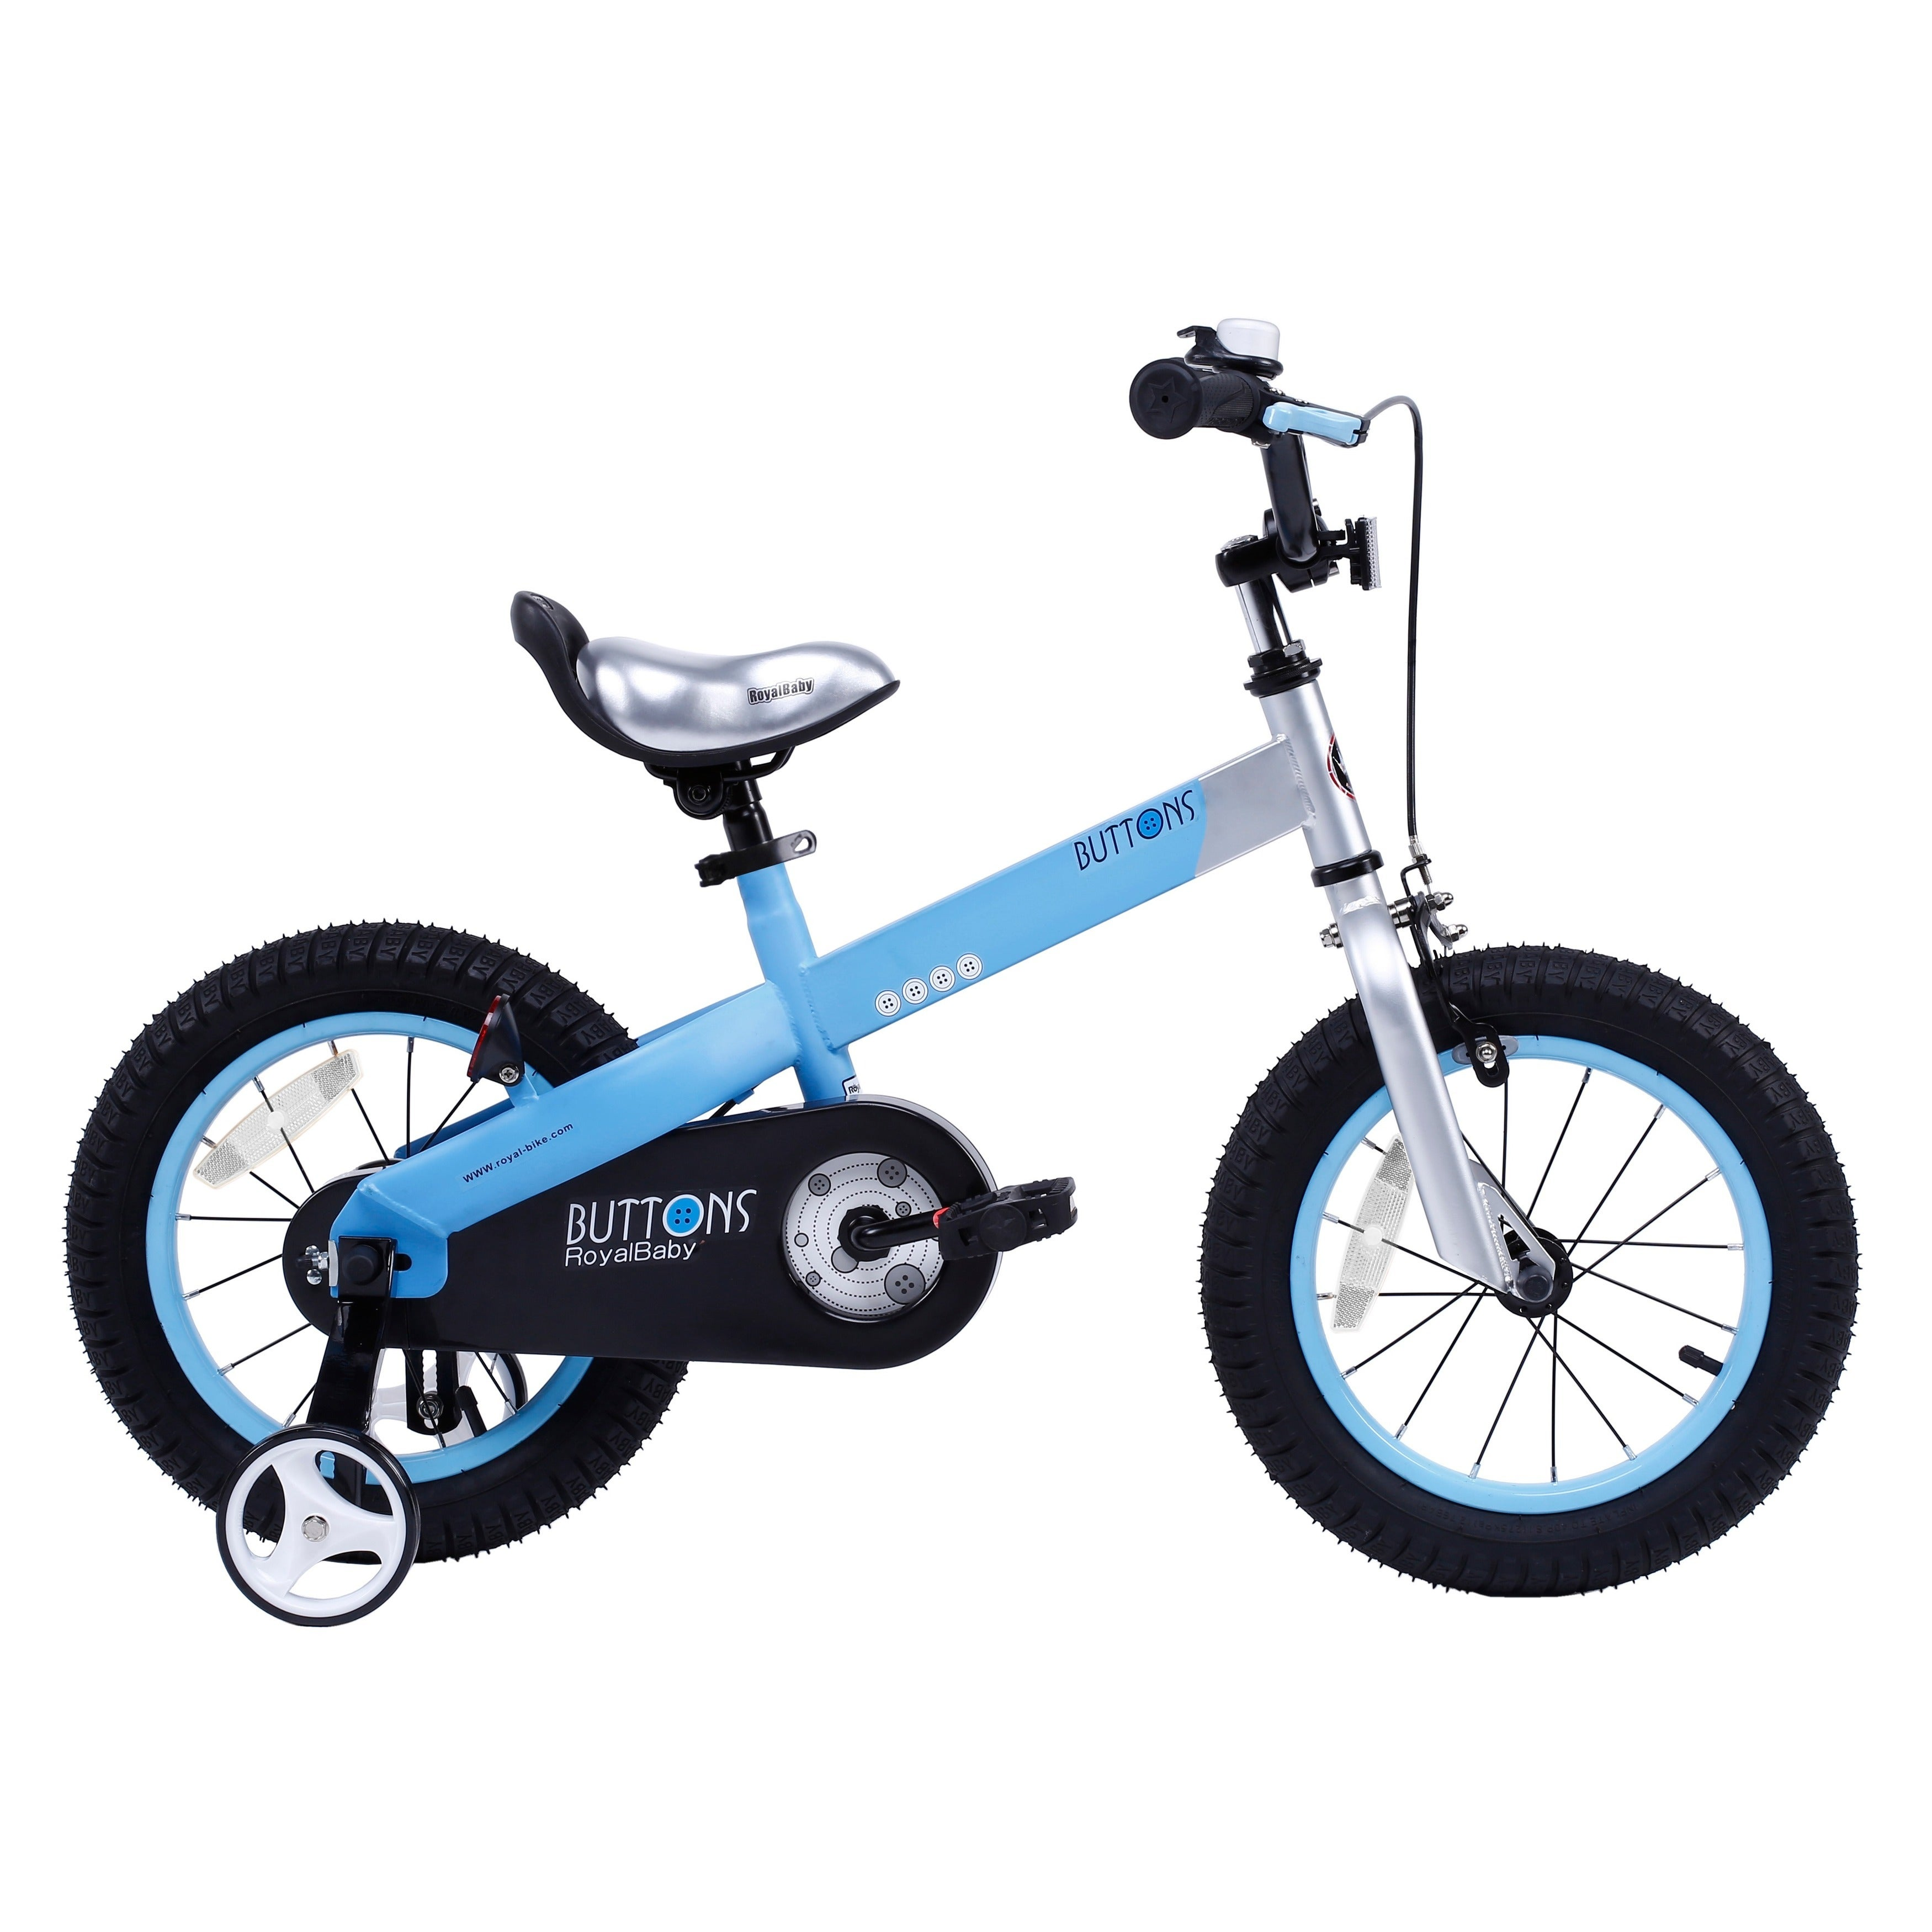 Royalbaby Matte Buttons 16-inch Kids' Bike with Training ...